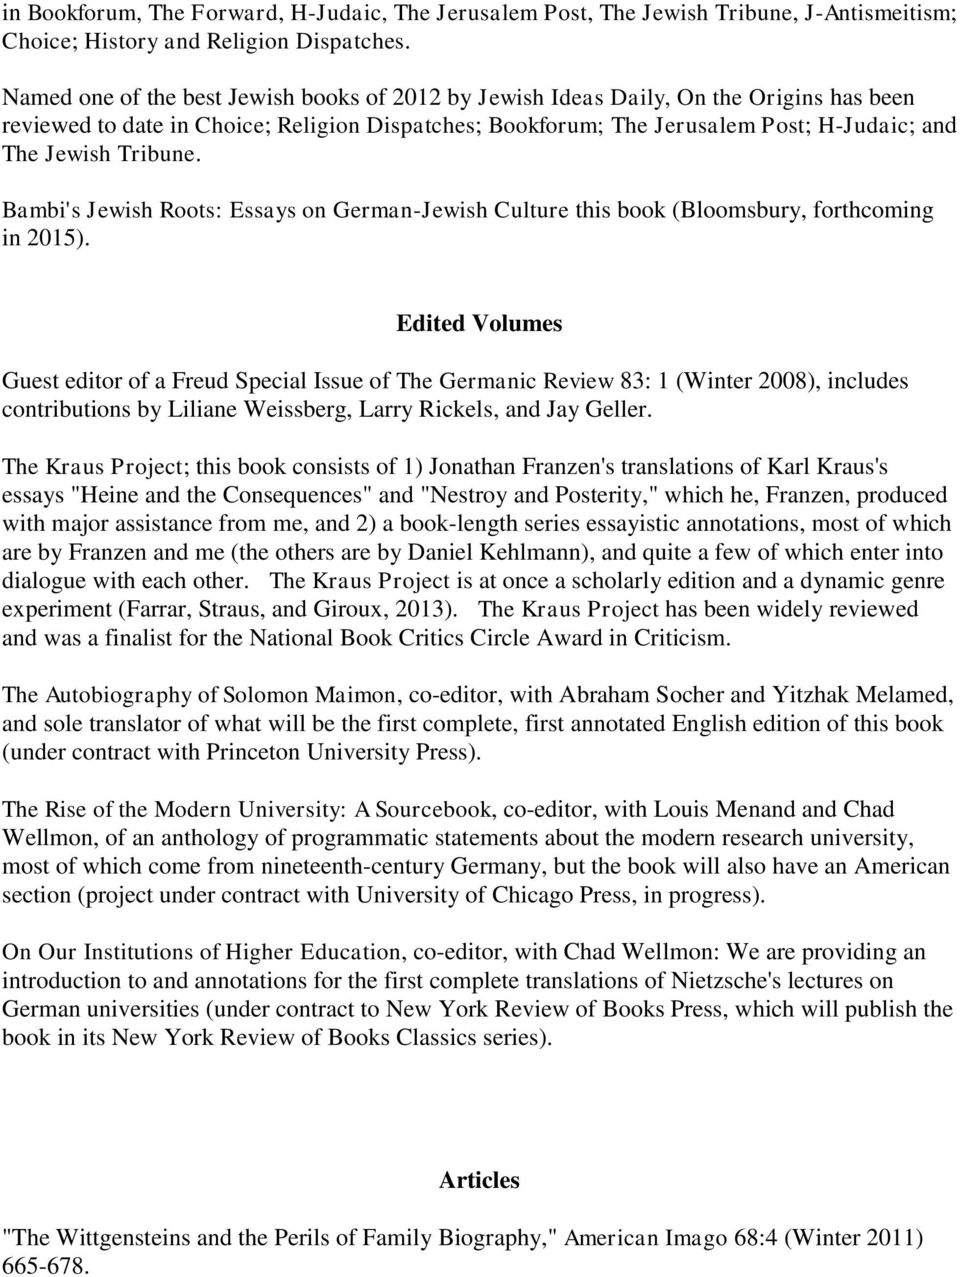 Tribune. Bambi's Jewish Roots: Essays on German-Jewish Culture this book (Bloomsbury, forthcoming in 2015).